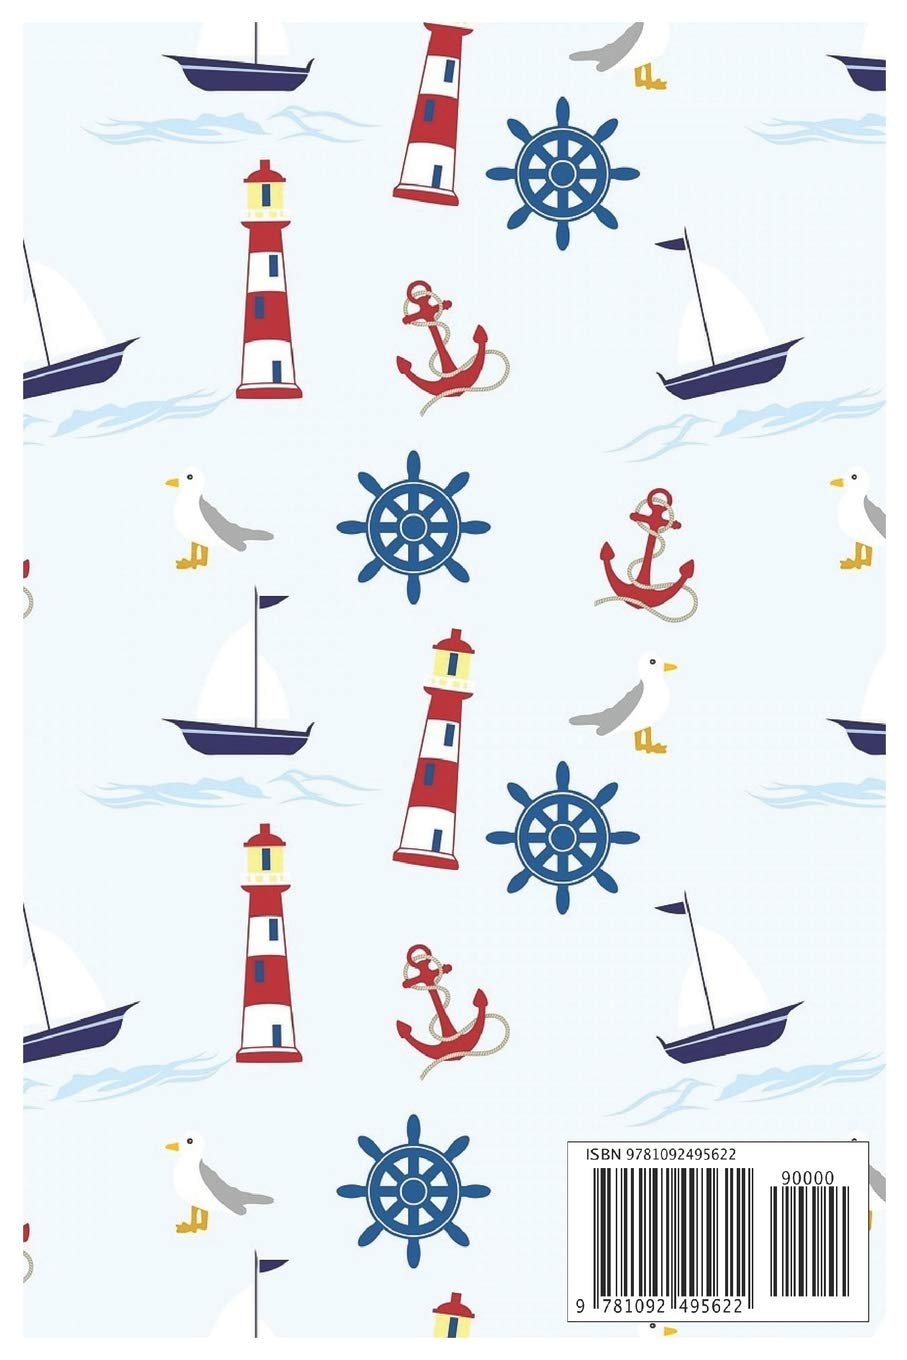 Practise Journal: Nautical Notebook/Workbook to Voyage Writing for Boating/Sailing, Blank Medium Lined Composition/Log…